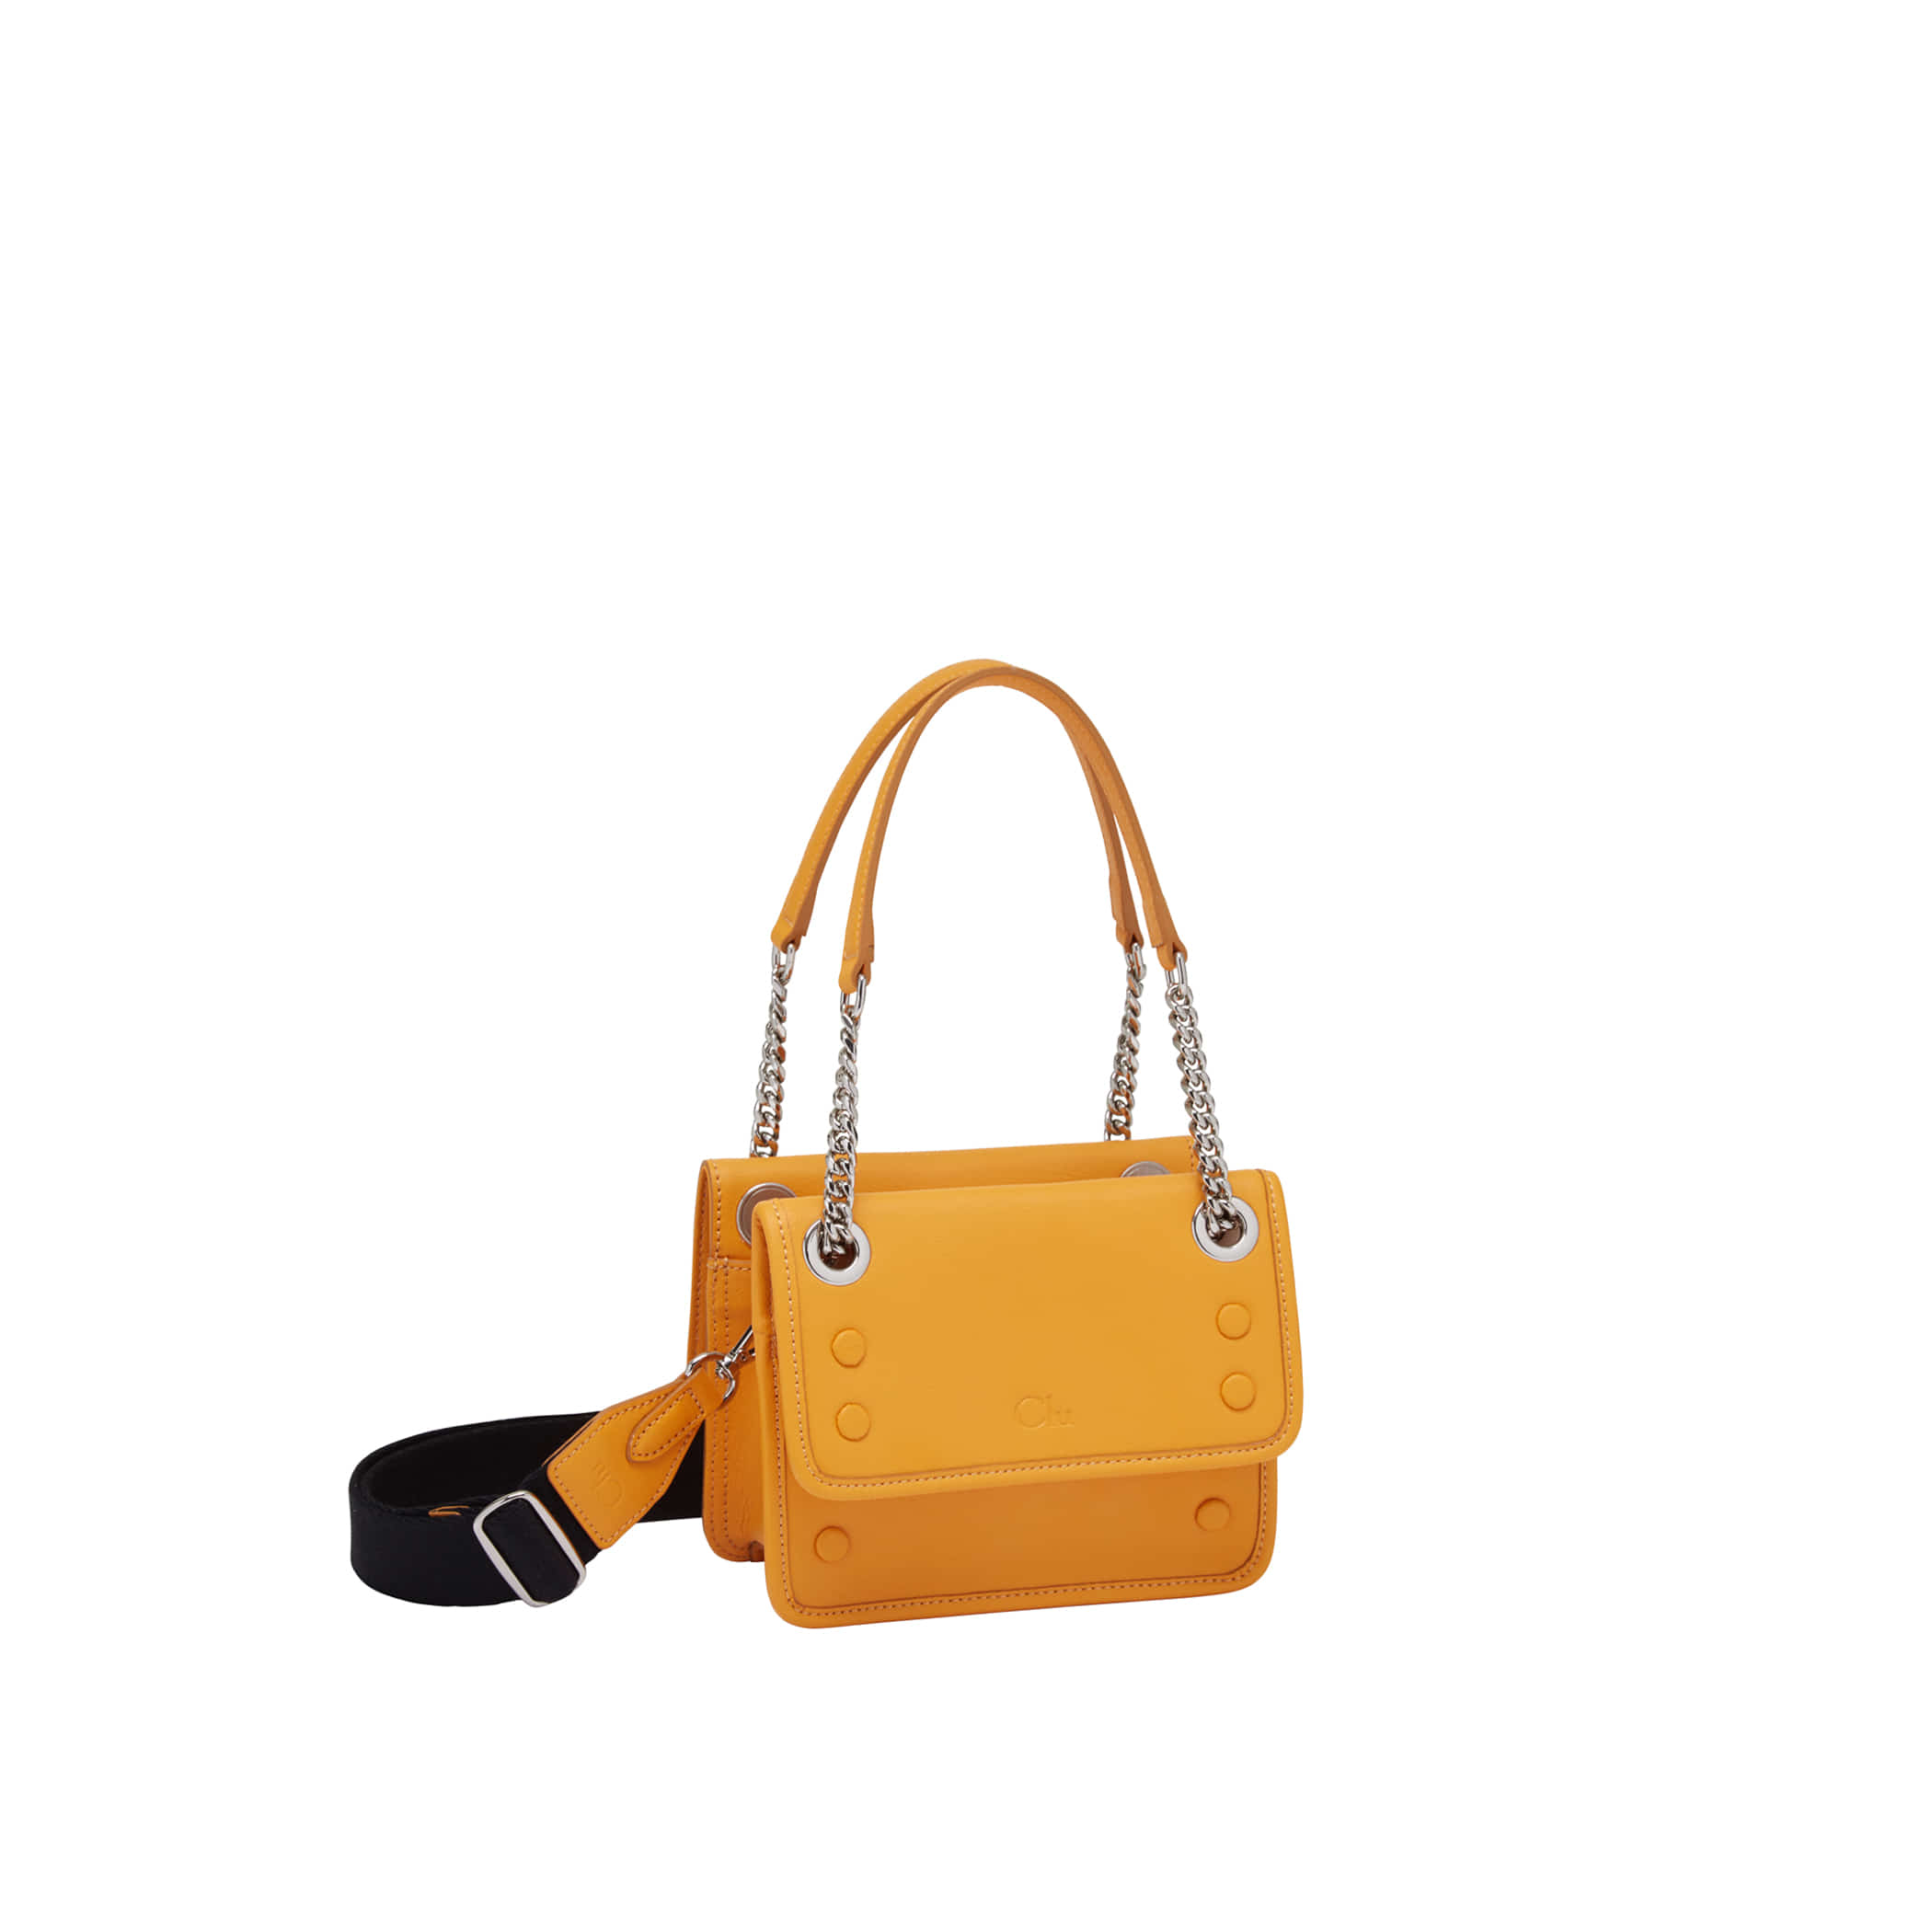 Clu_JAXSTA MINI CROSS BAG IN YELLOW